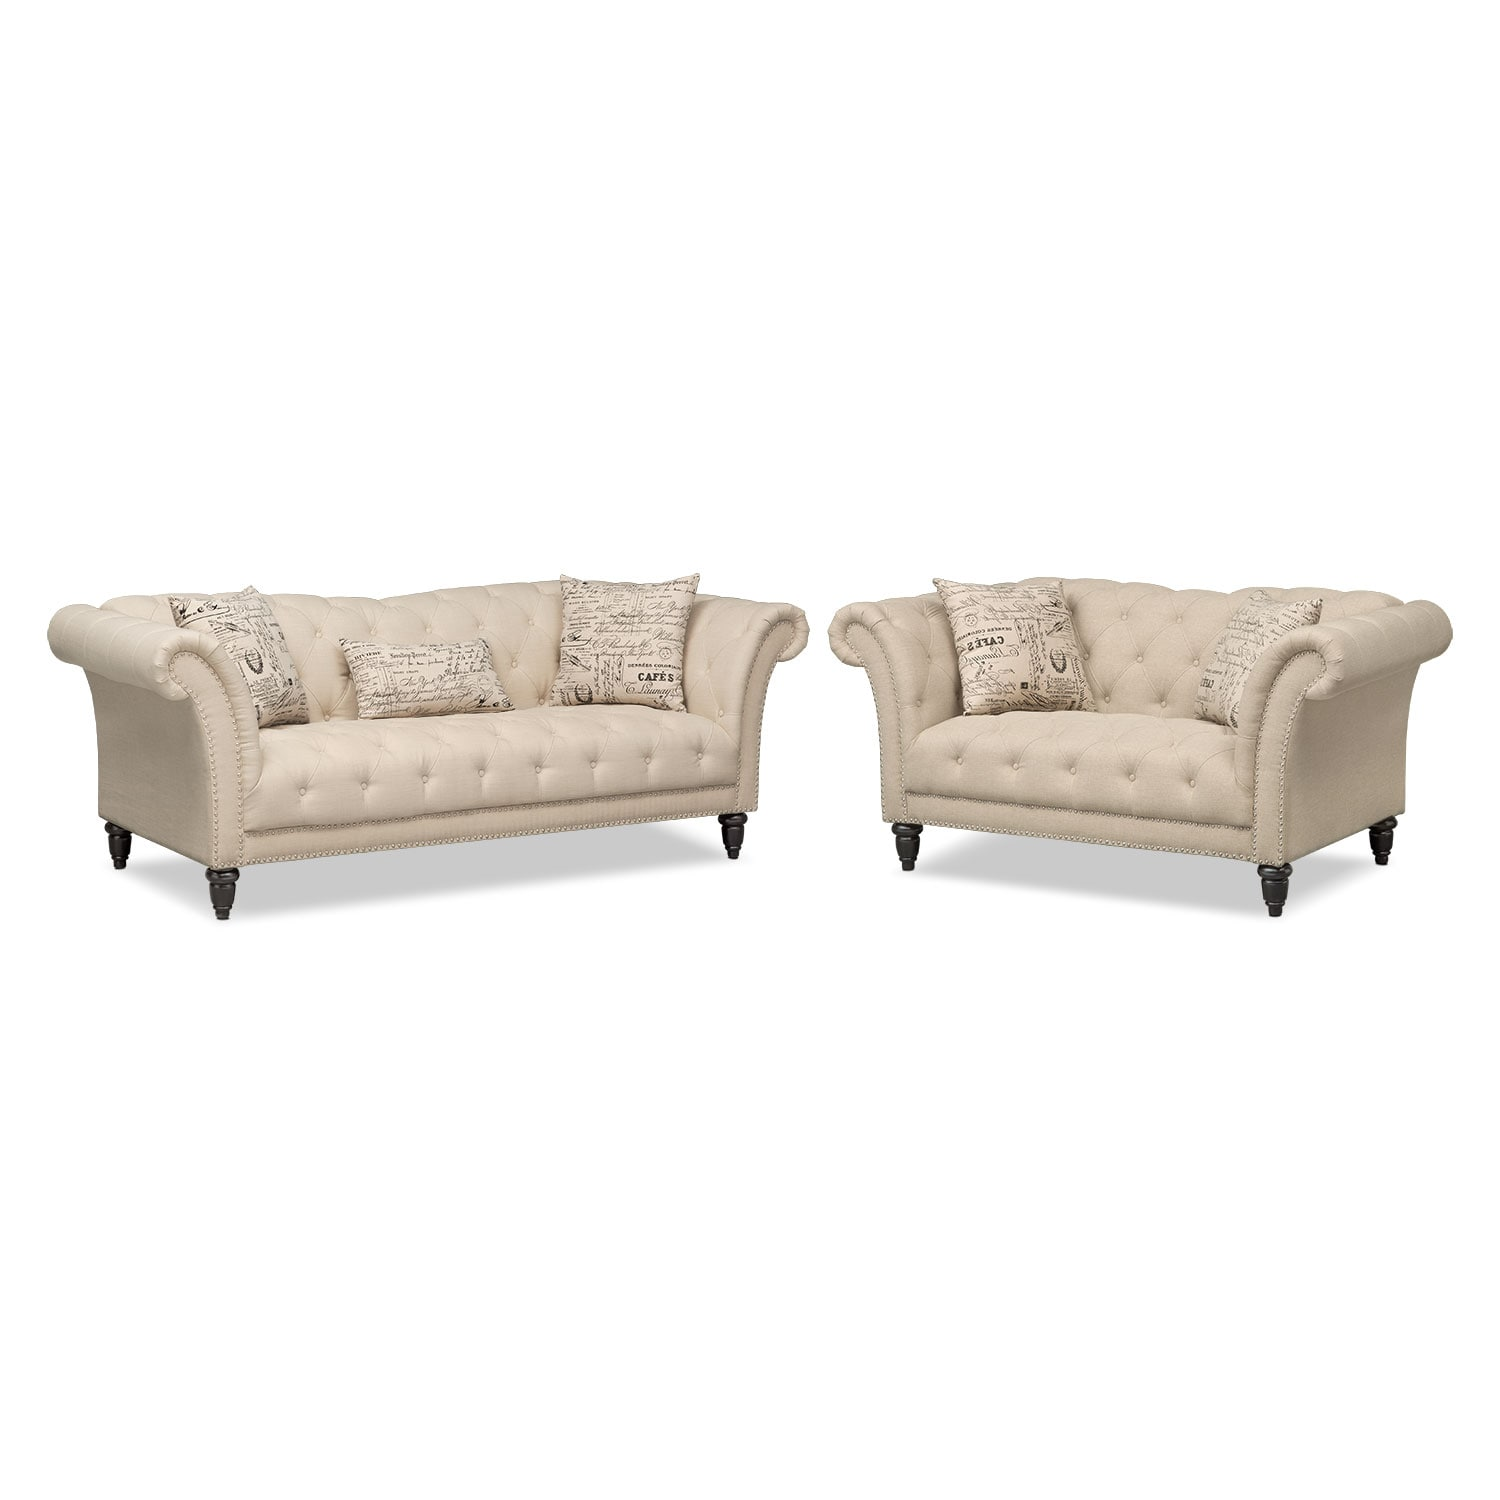 Marisol sofa beige value city furniture for Divan and settee